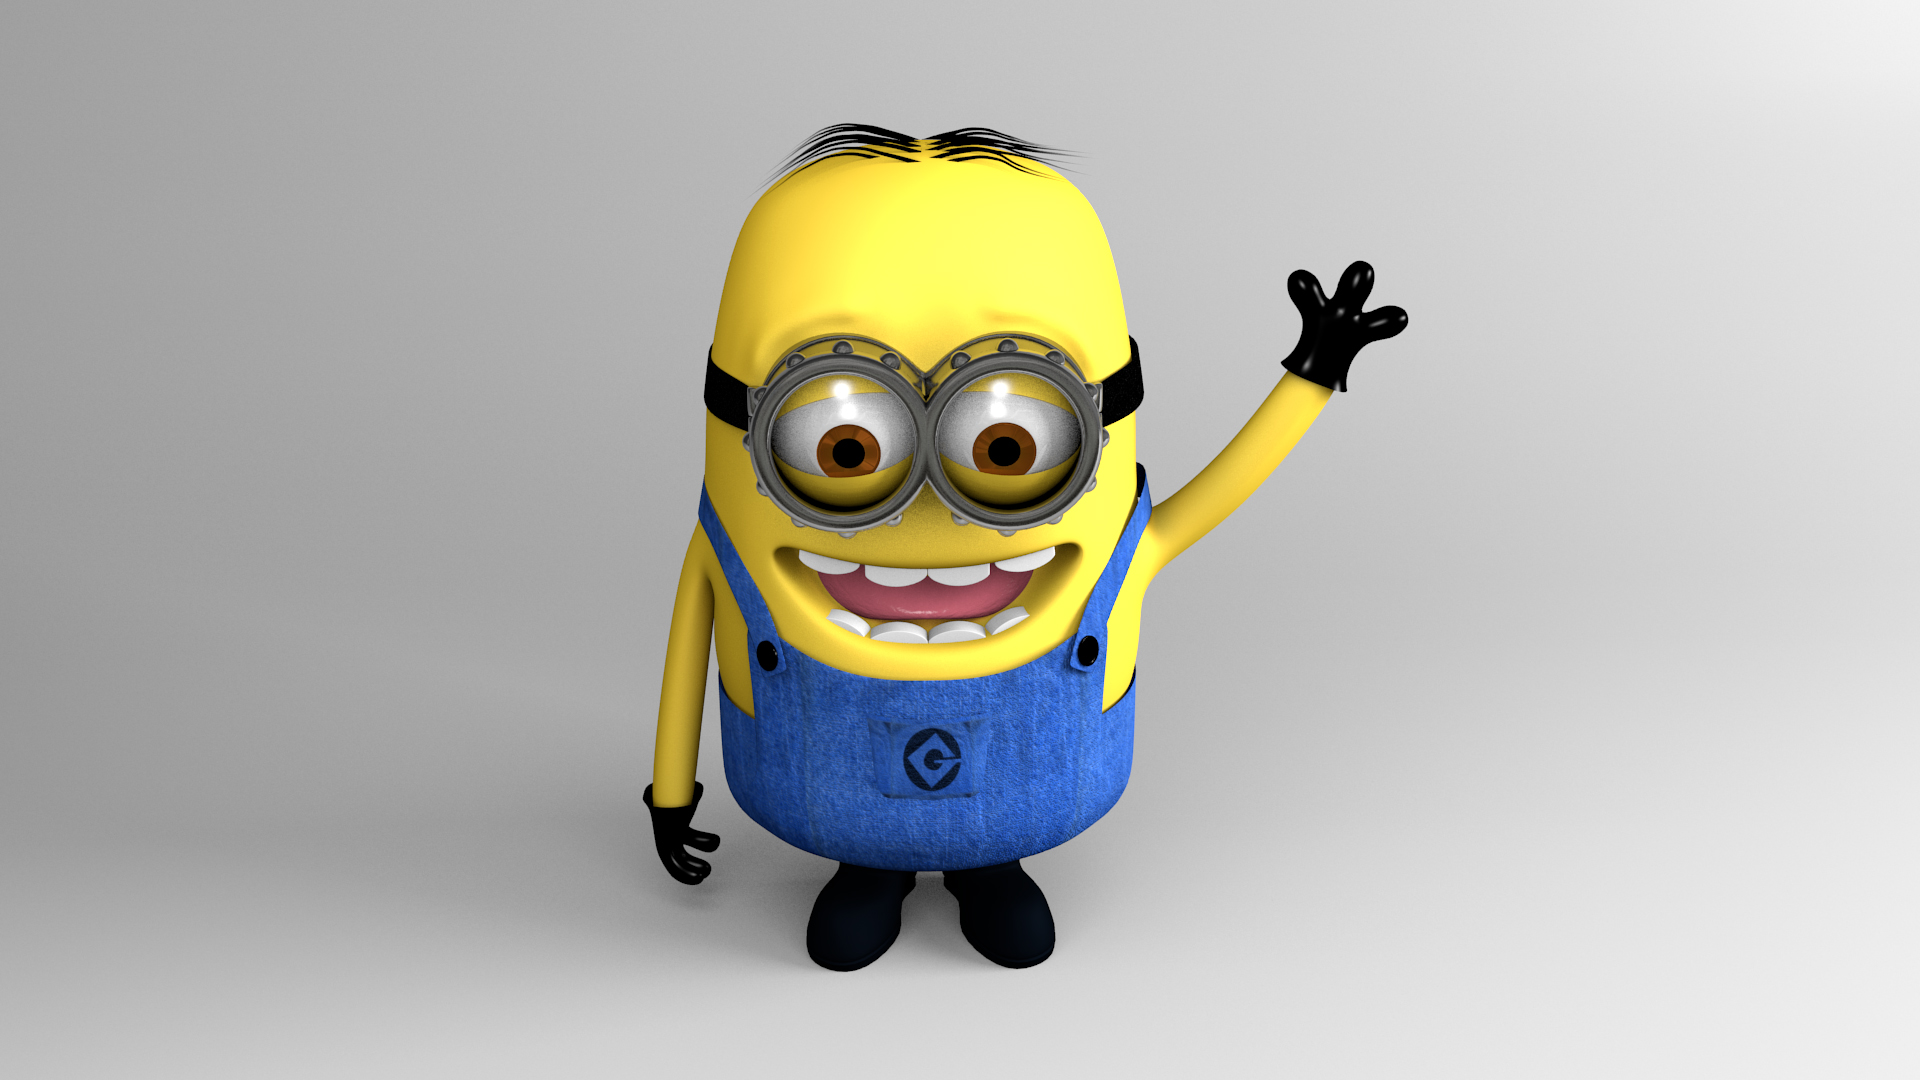 3d wallpaper minions - wallpapersafari